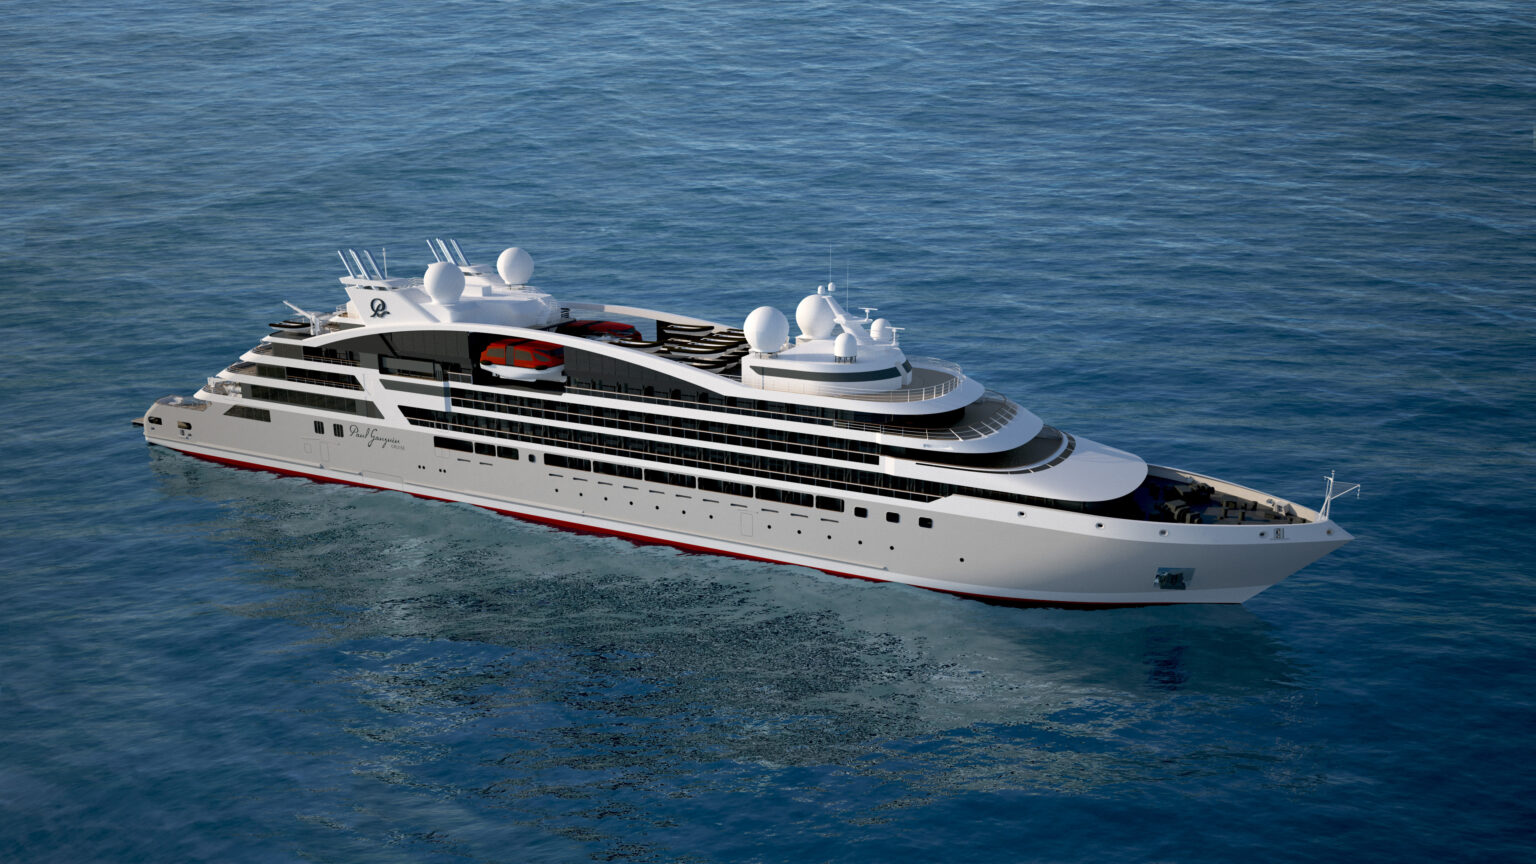 Ponant becomes the first international cruise line that joins Green Marine